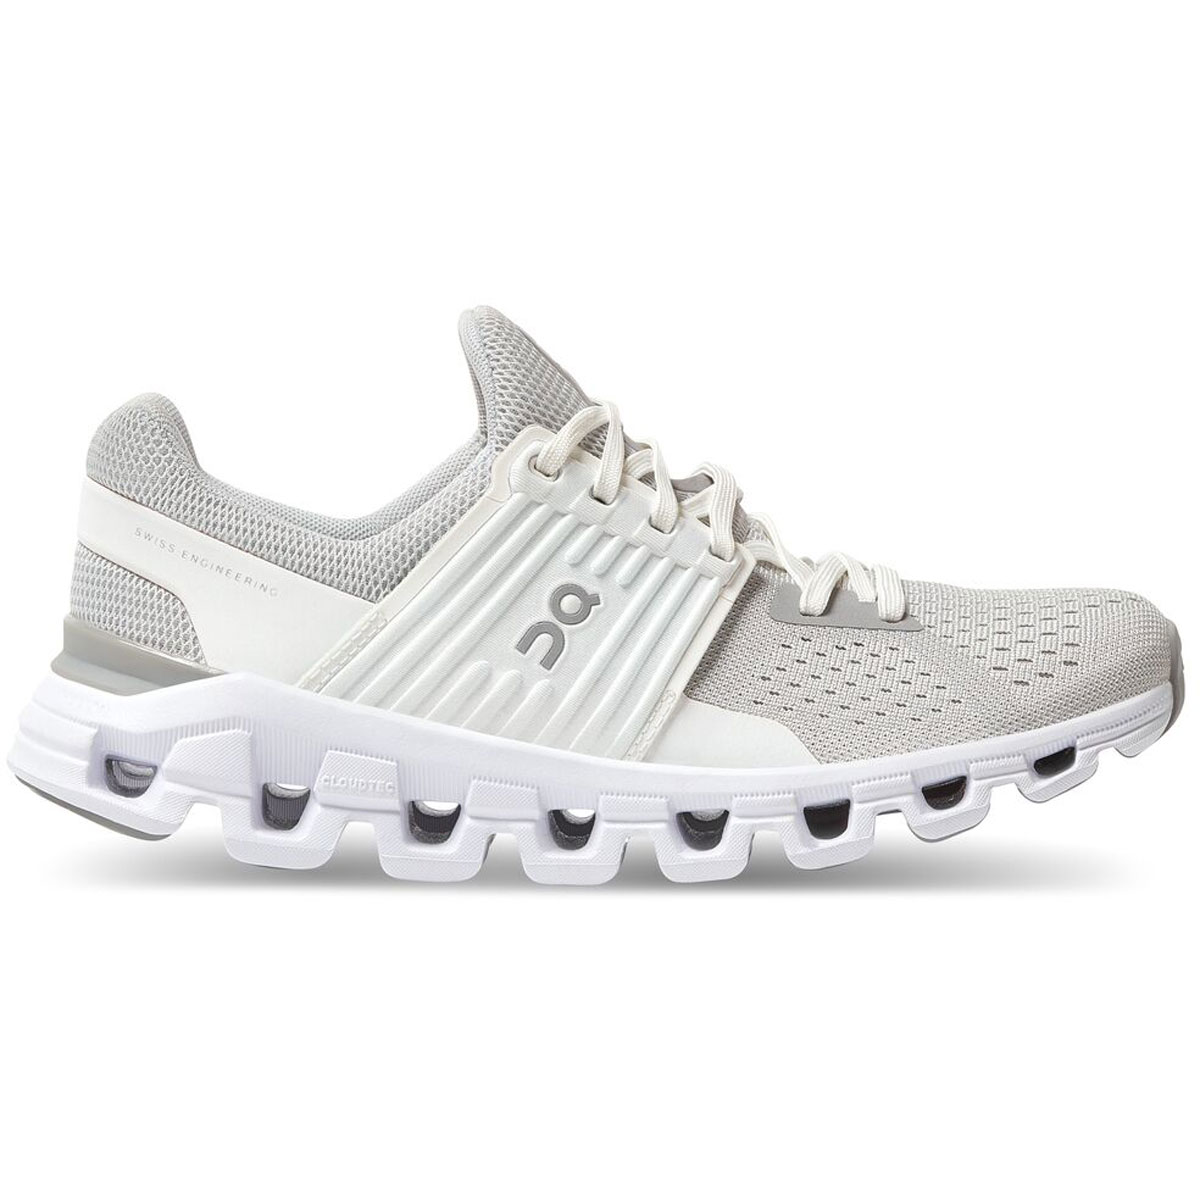 Women's On Cloudswift 2.0 Running Shoe - Color: Glacier/White - Size: 5 - Width: Regular, Glacier/White, large, image 1